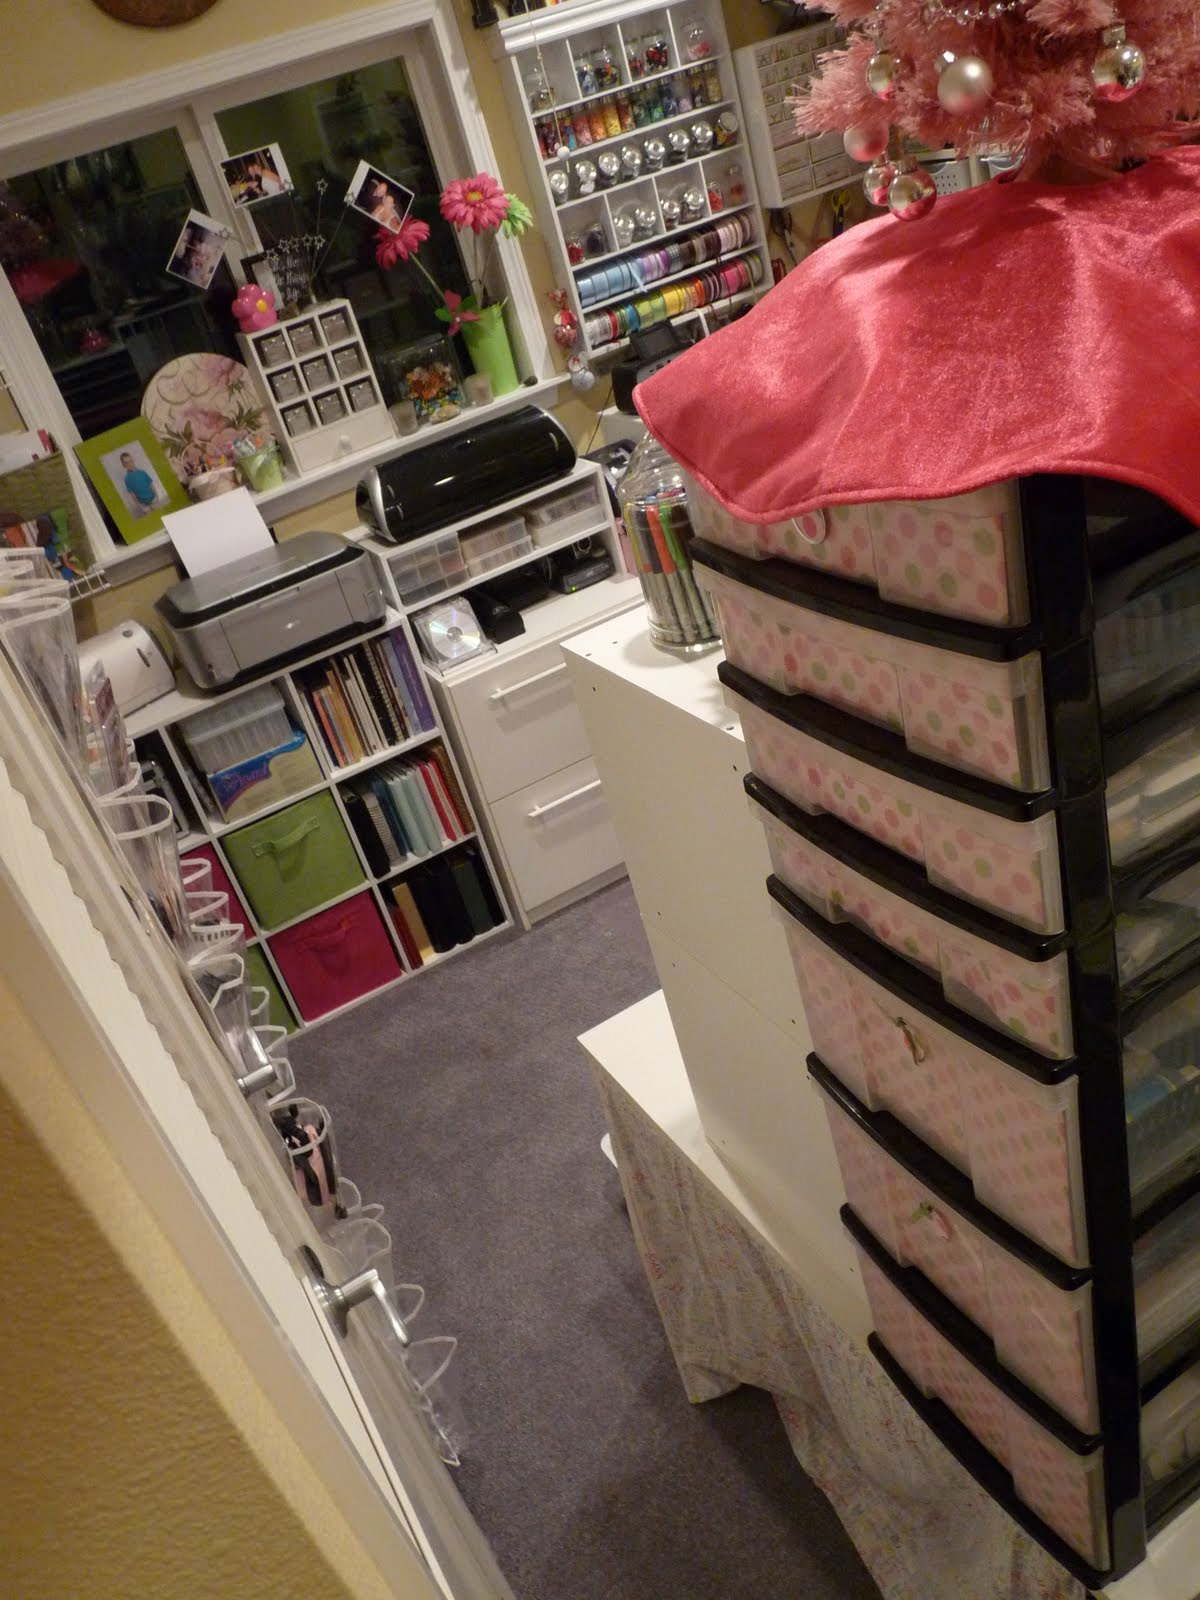 Welcome to my Newly Updated Scrapbook Room. I hope you enjoy looking